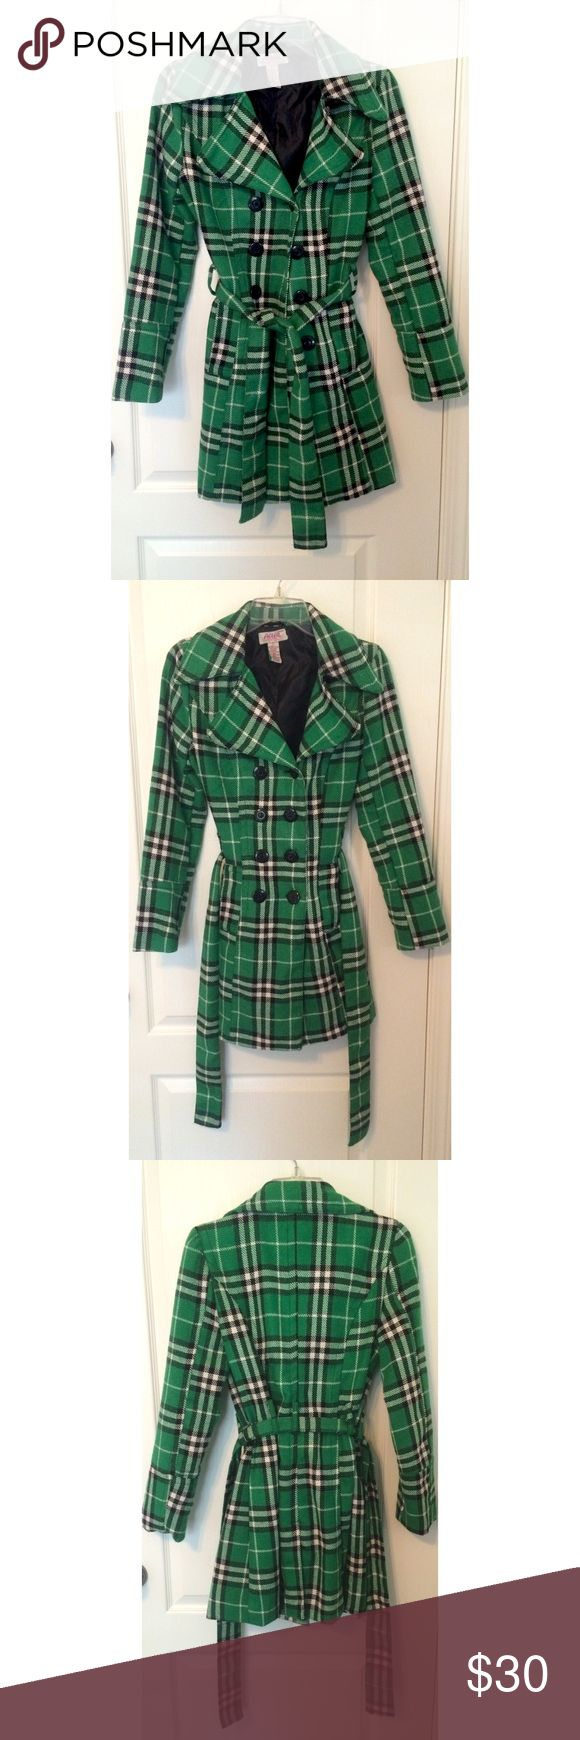 """Green Double-Breasted Women's Peacoat Green Double-Breasted Women's Peacoat. Like new. Only worn once. The length of the coat ends just above the knee. Exact length is 2' 8.5"""" Aviva Premium Jackets & Coats Pea Coats"""